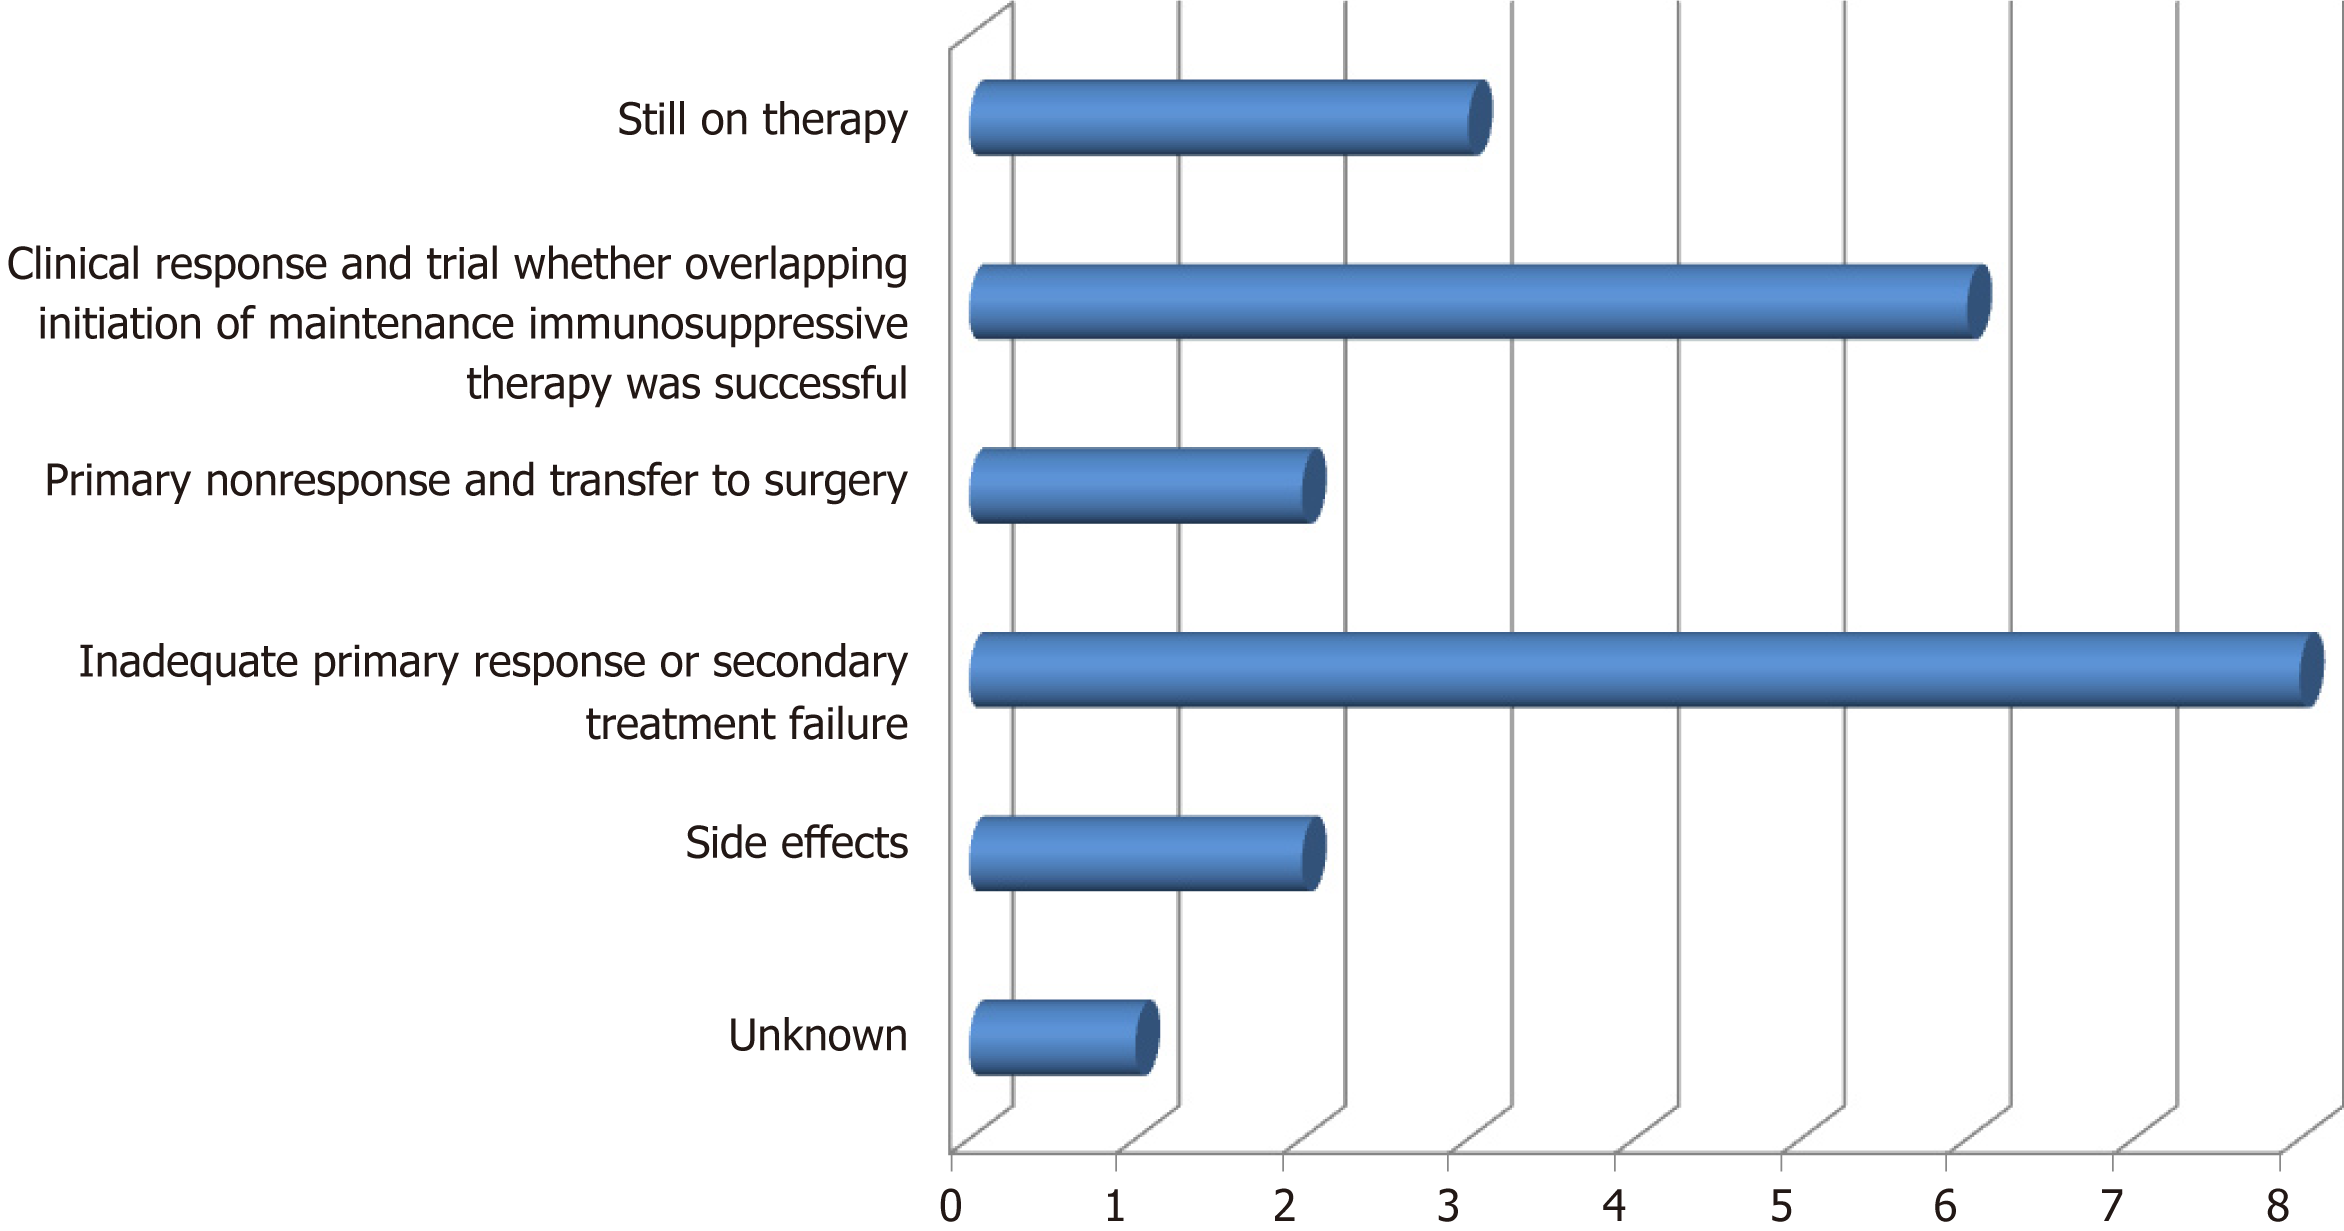 Performance of tacrolimus in hospitalized patients with